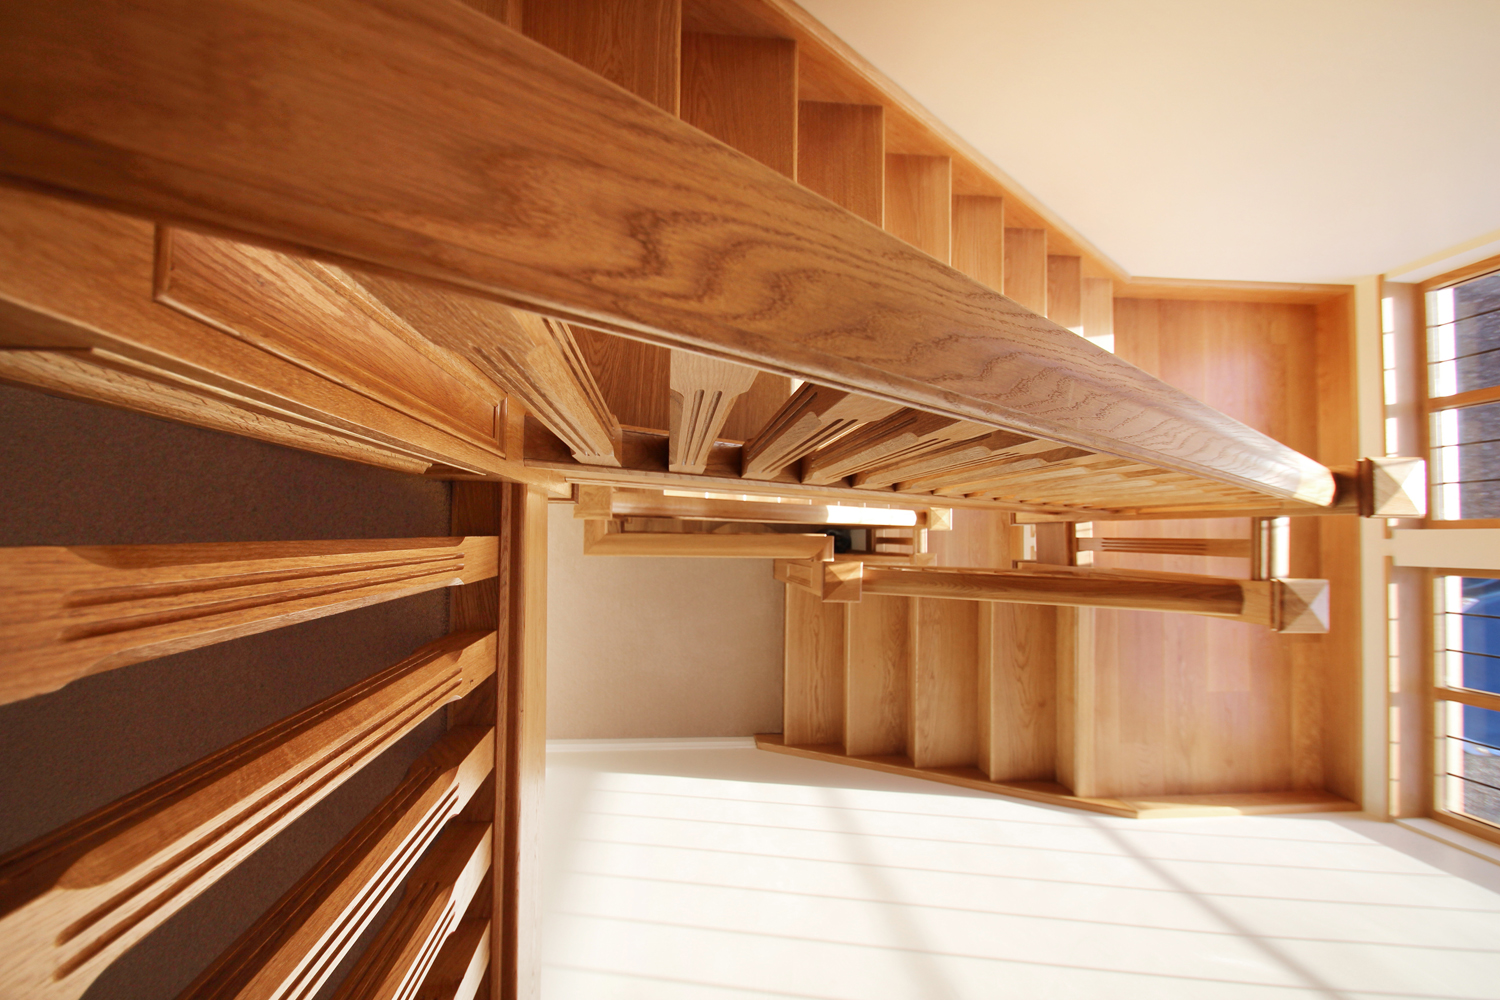 STAIRS JOINERY